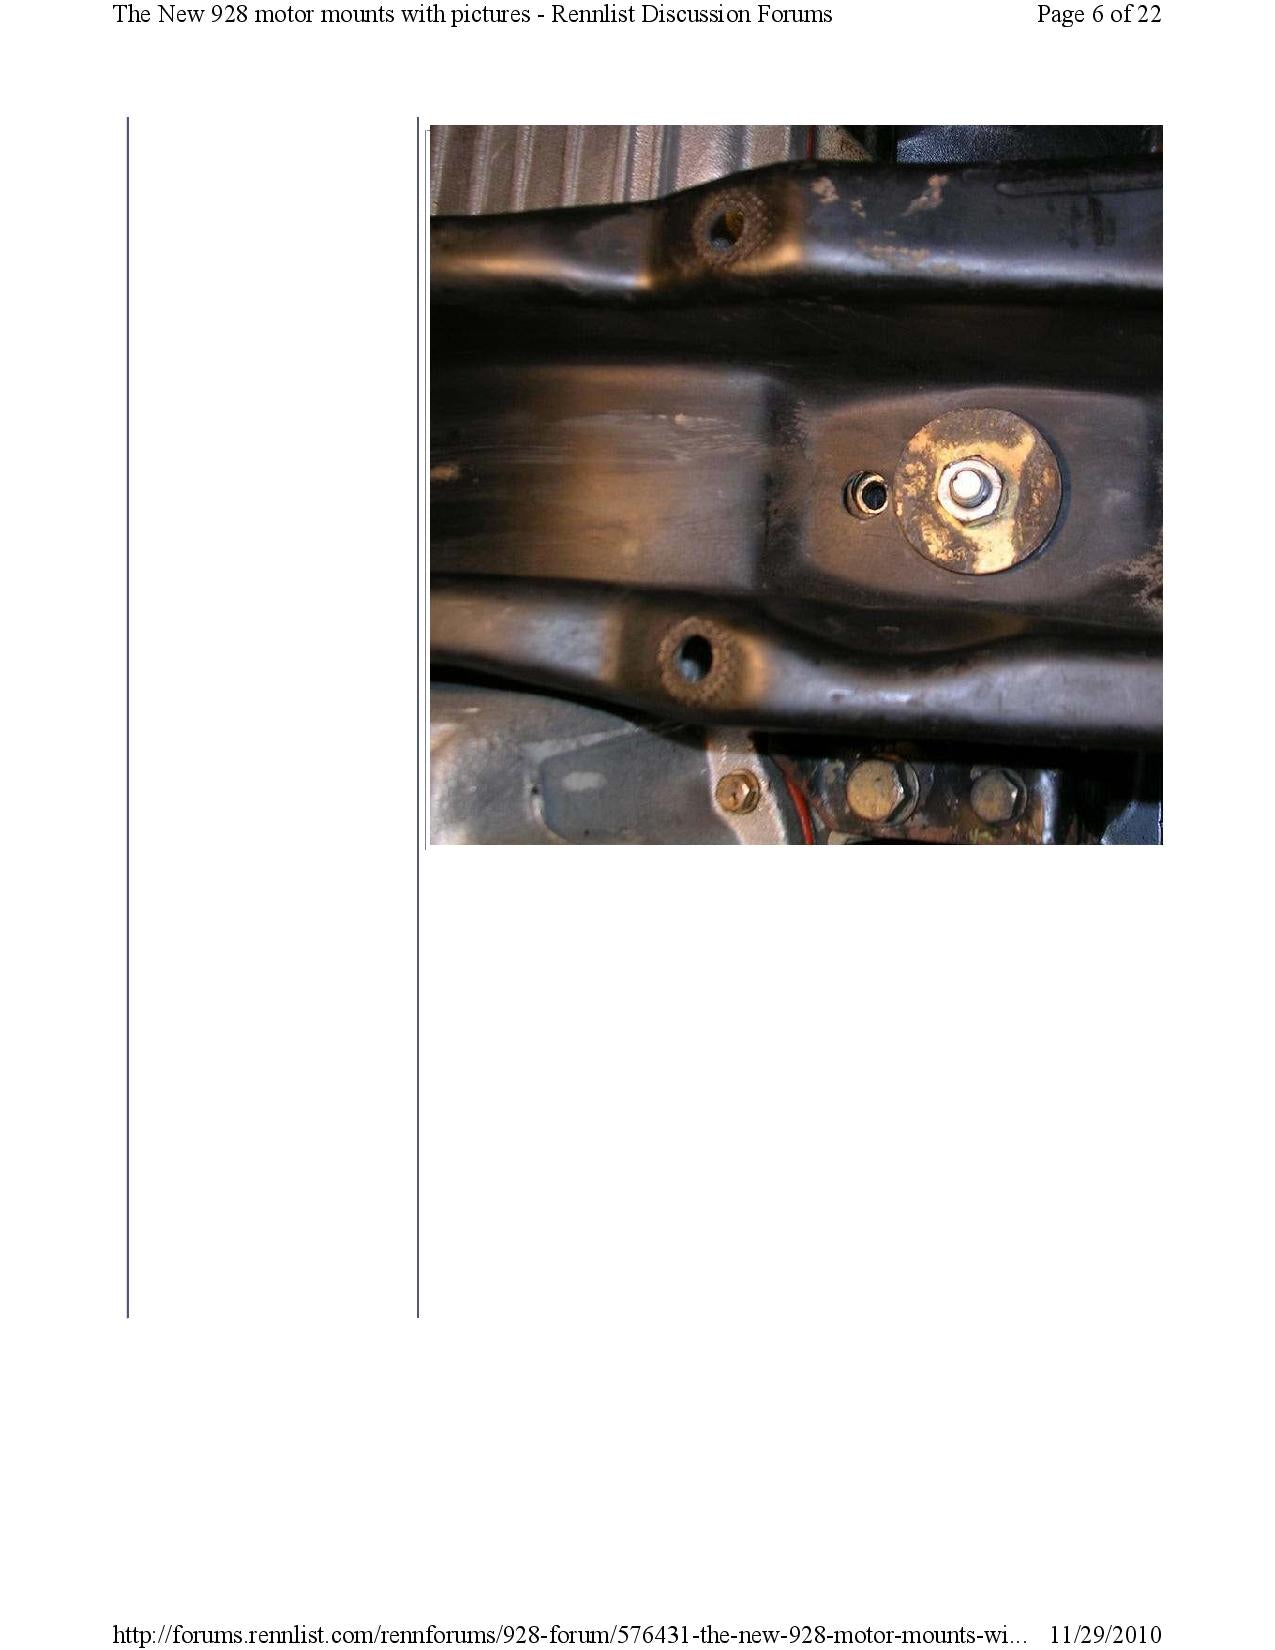 New 928 motor mounts with pictures pg6